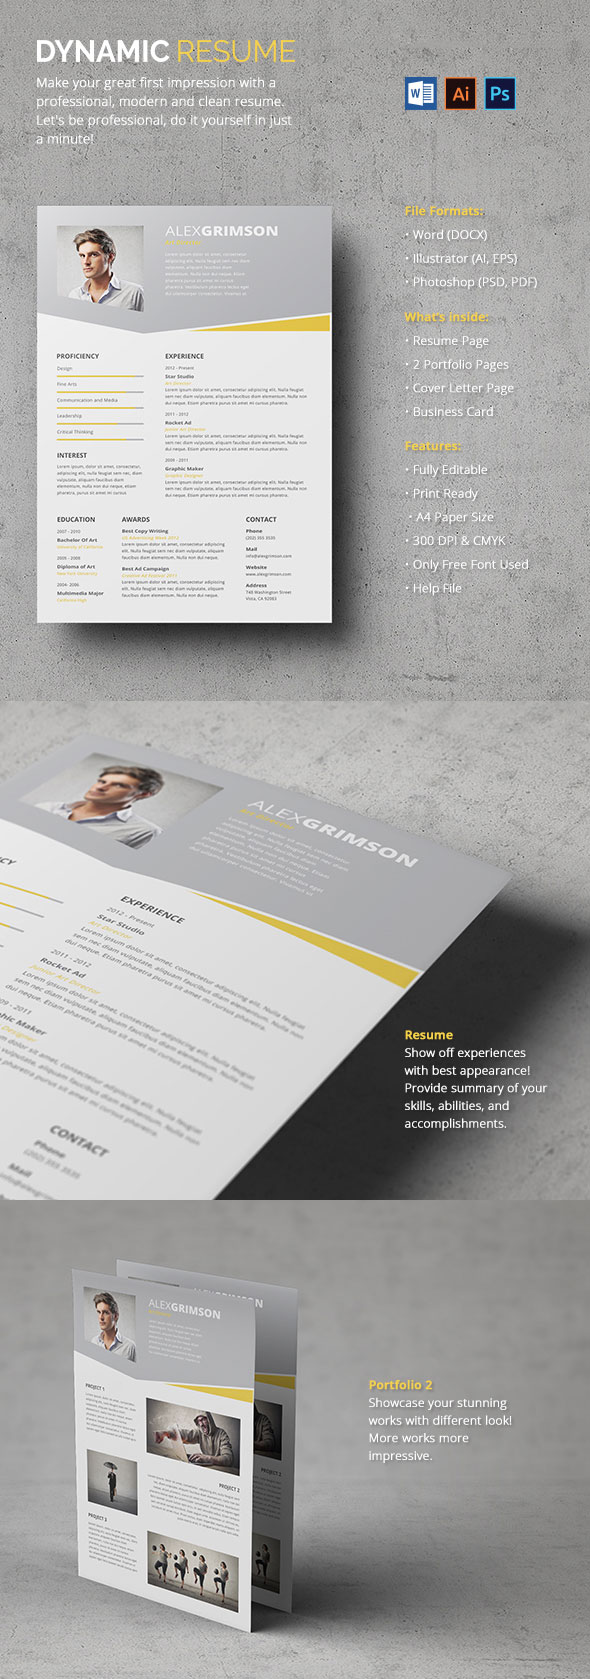 Dynamic Resume - With Portfolio Pages Included